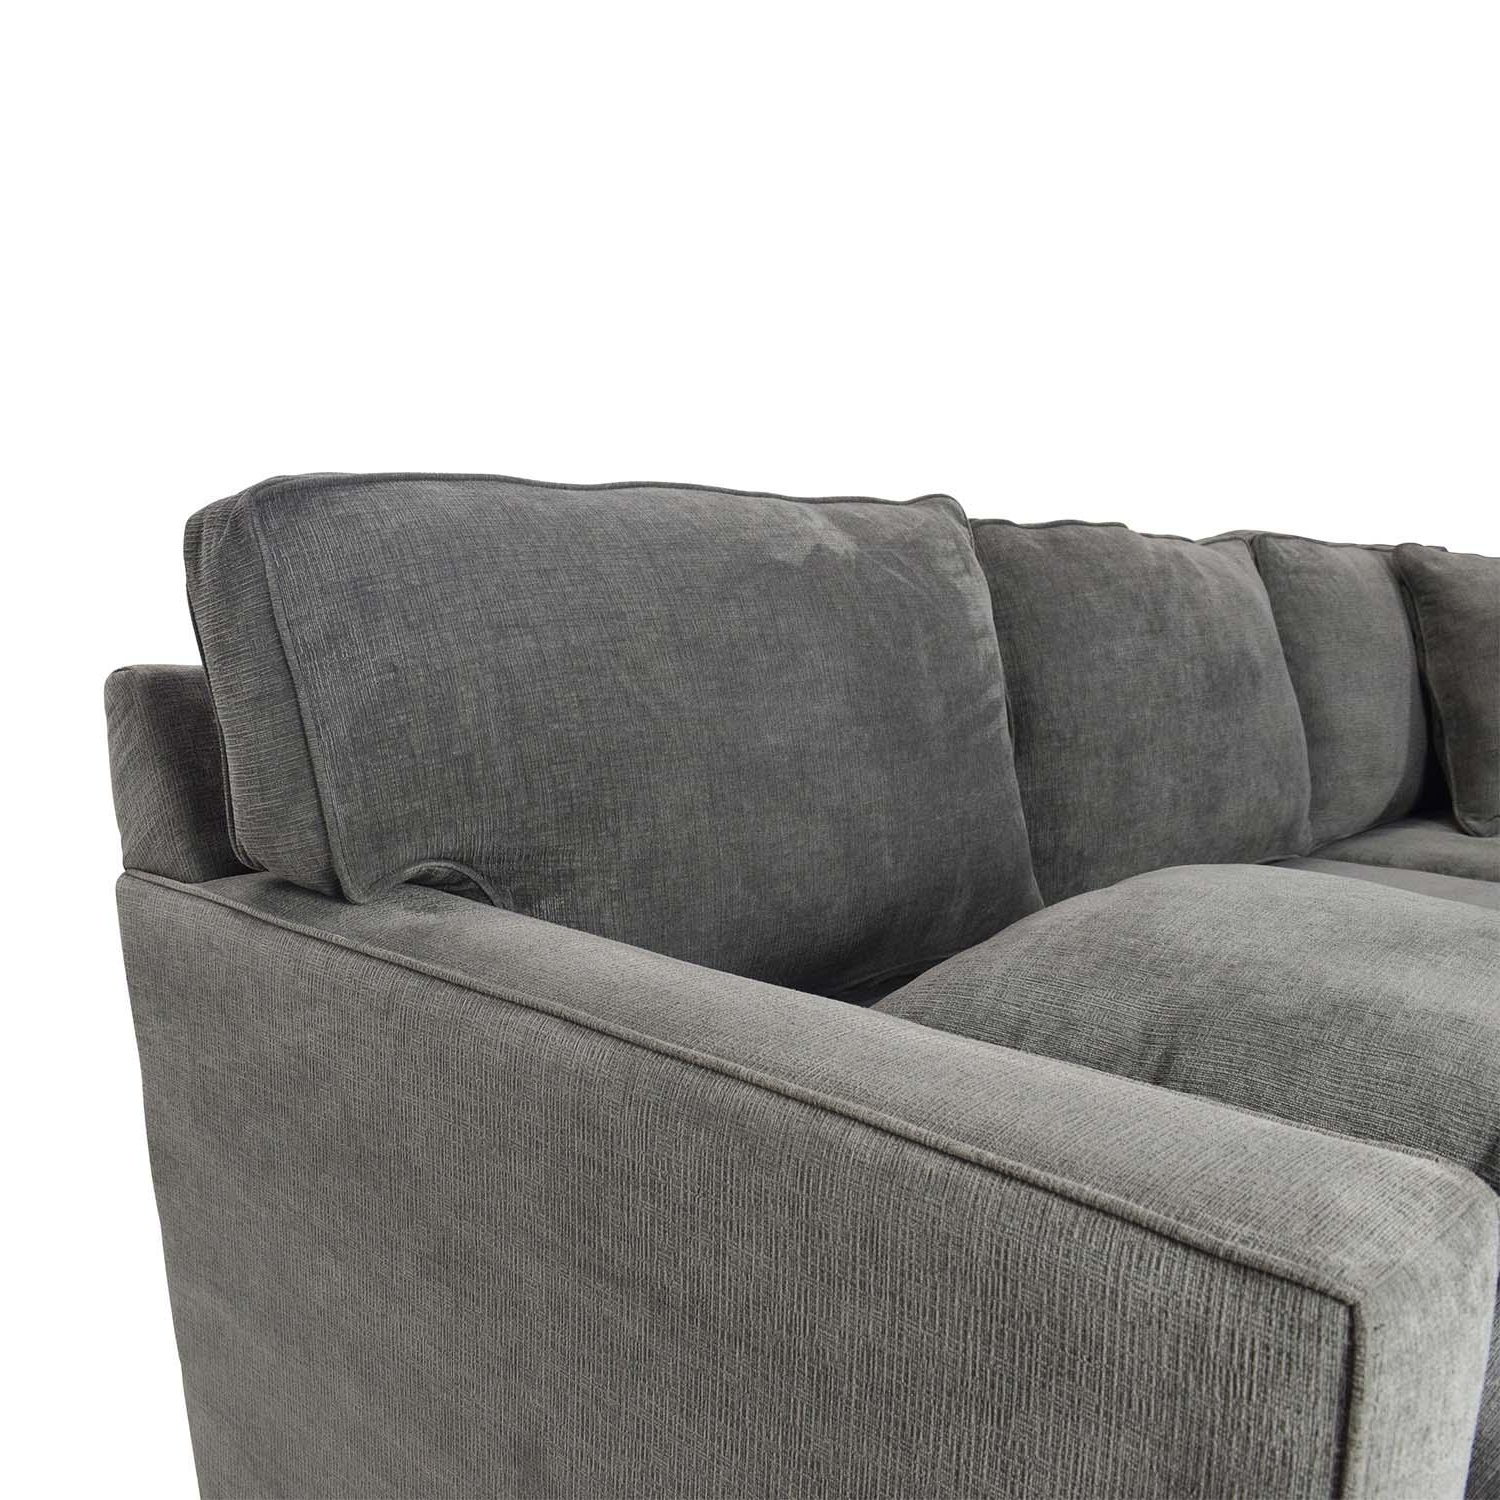 Macys Sofas Intended For Most Recently Released Furniture : Macys Couches Best Of F Macys Radley Sectional Sofa (View 15 of 20)